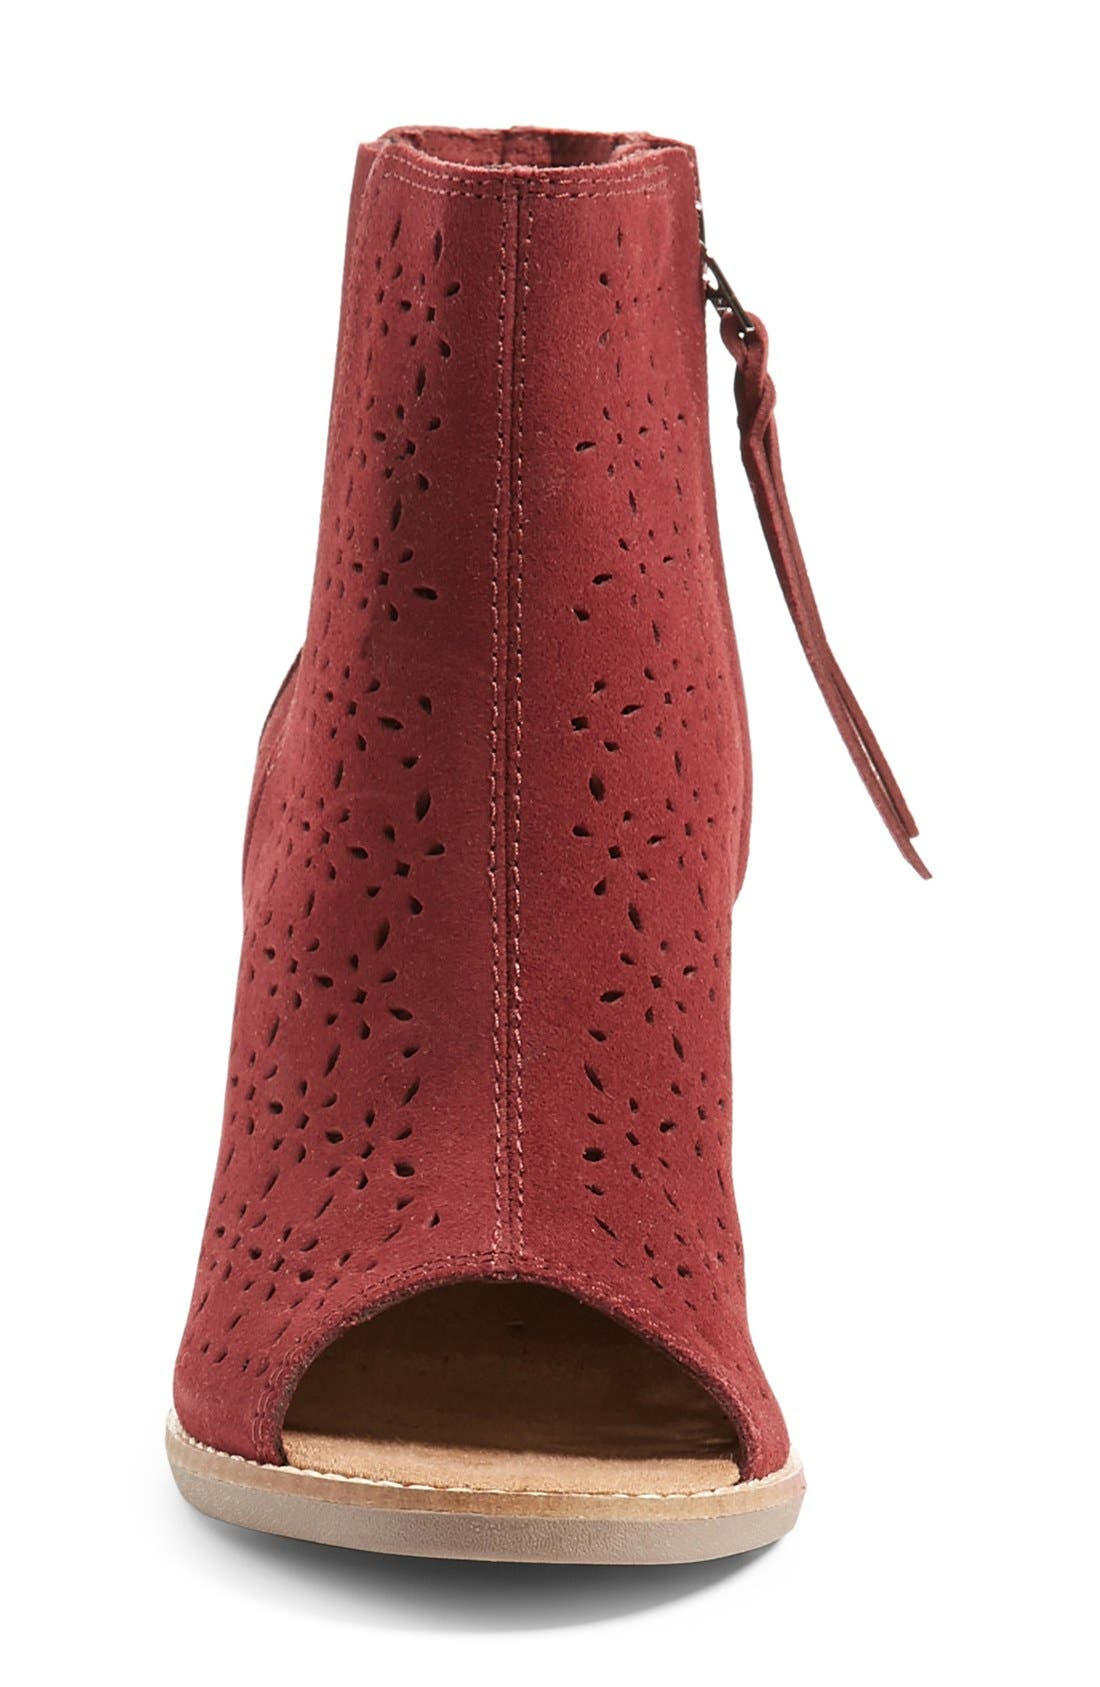 'Majorca' Peep Toe Bootie,                             Alternate thumbnail 3, color,                             Burgundy Suede